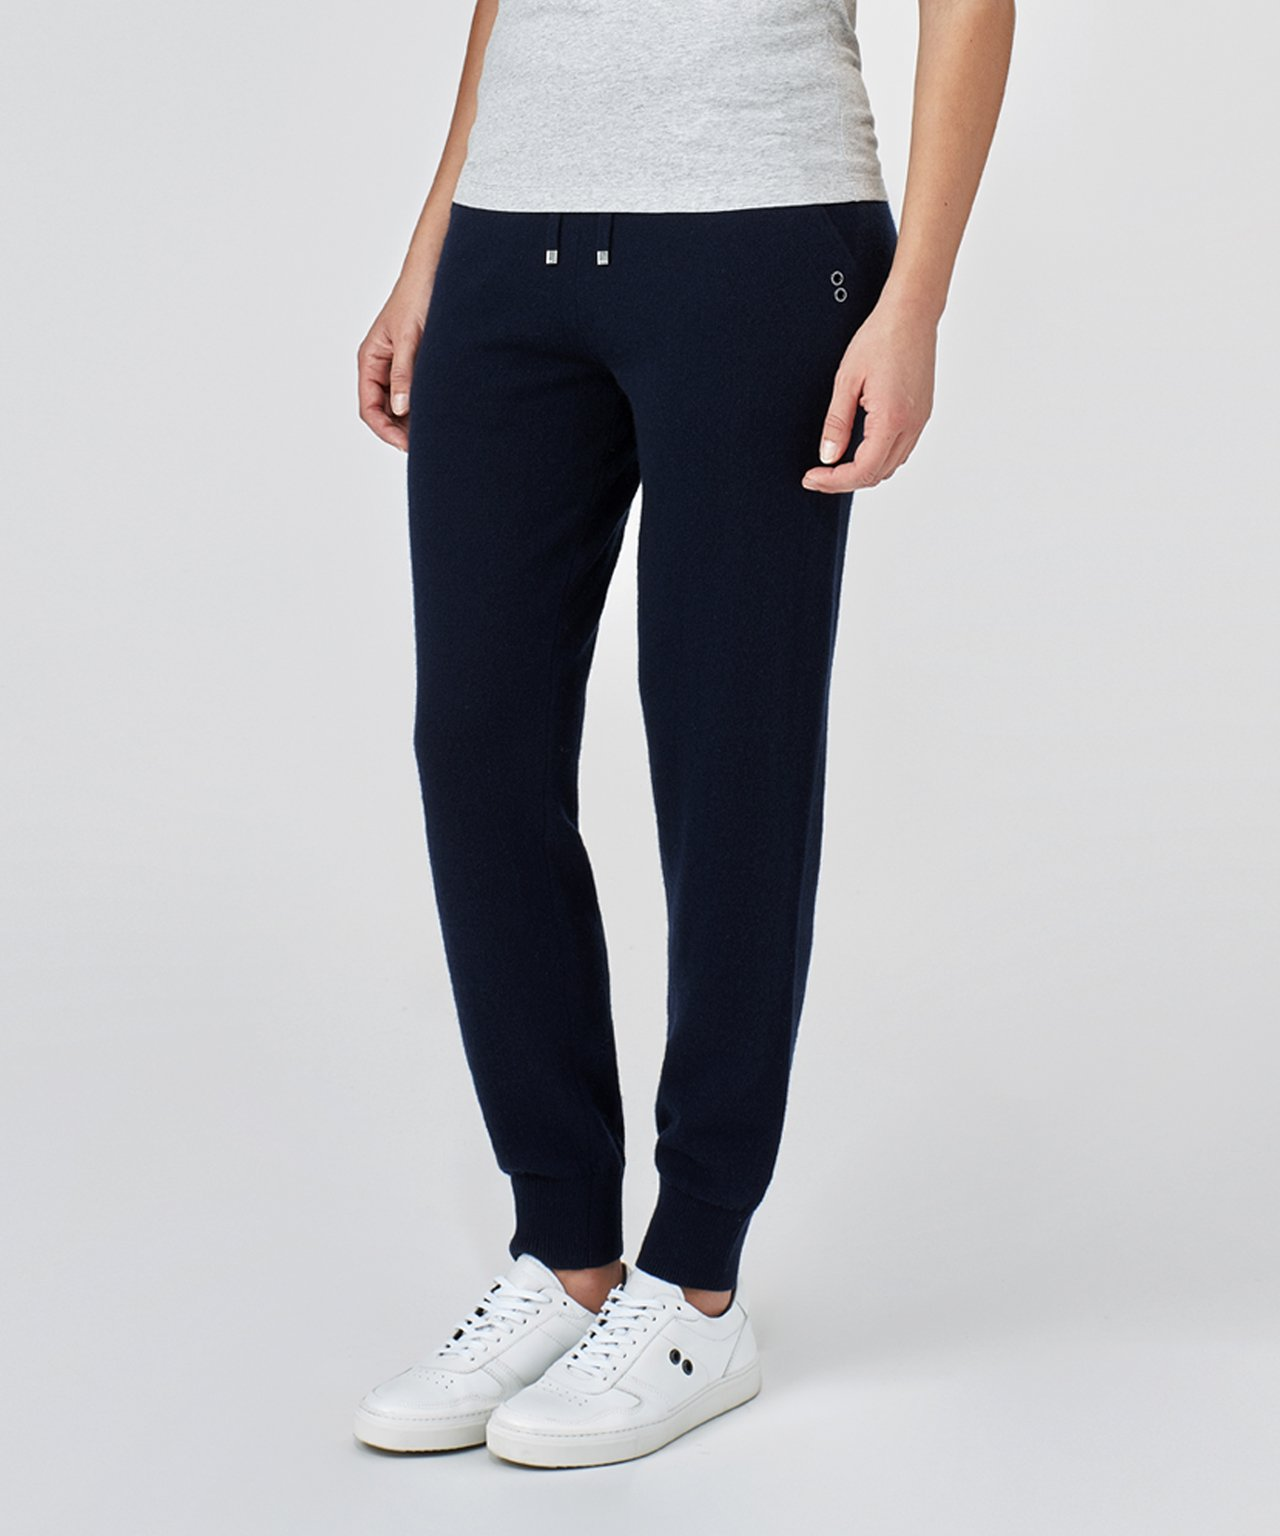 Cashmere Pants His For Her - navy